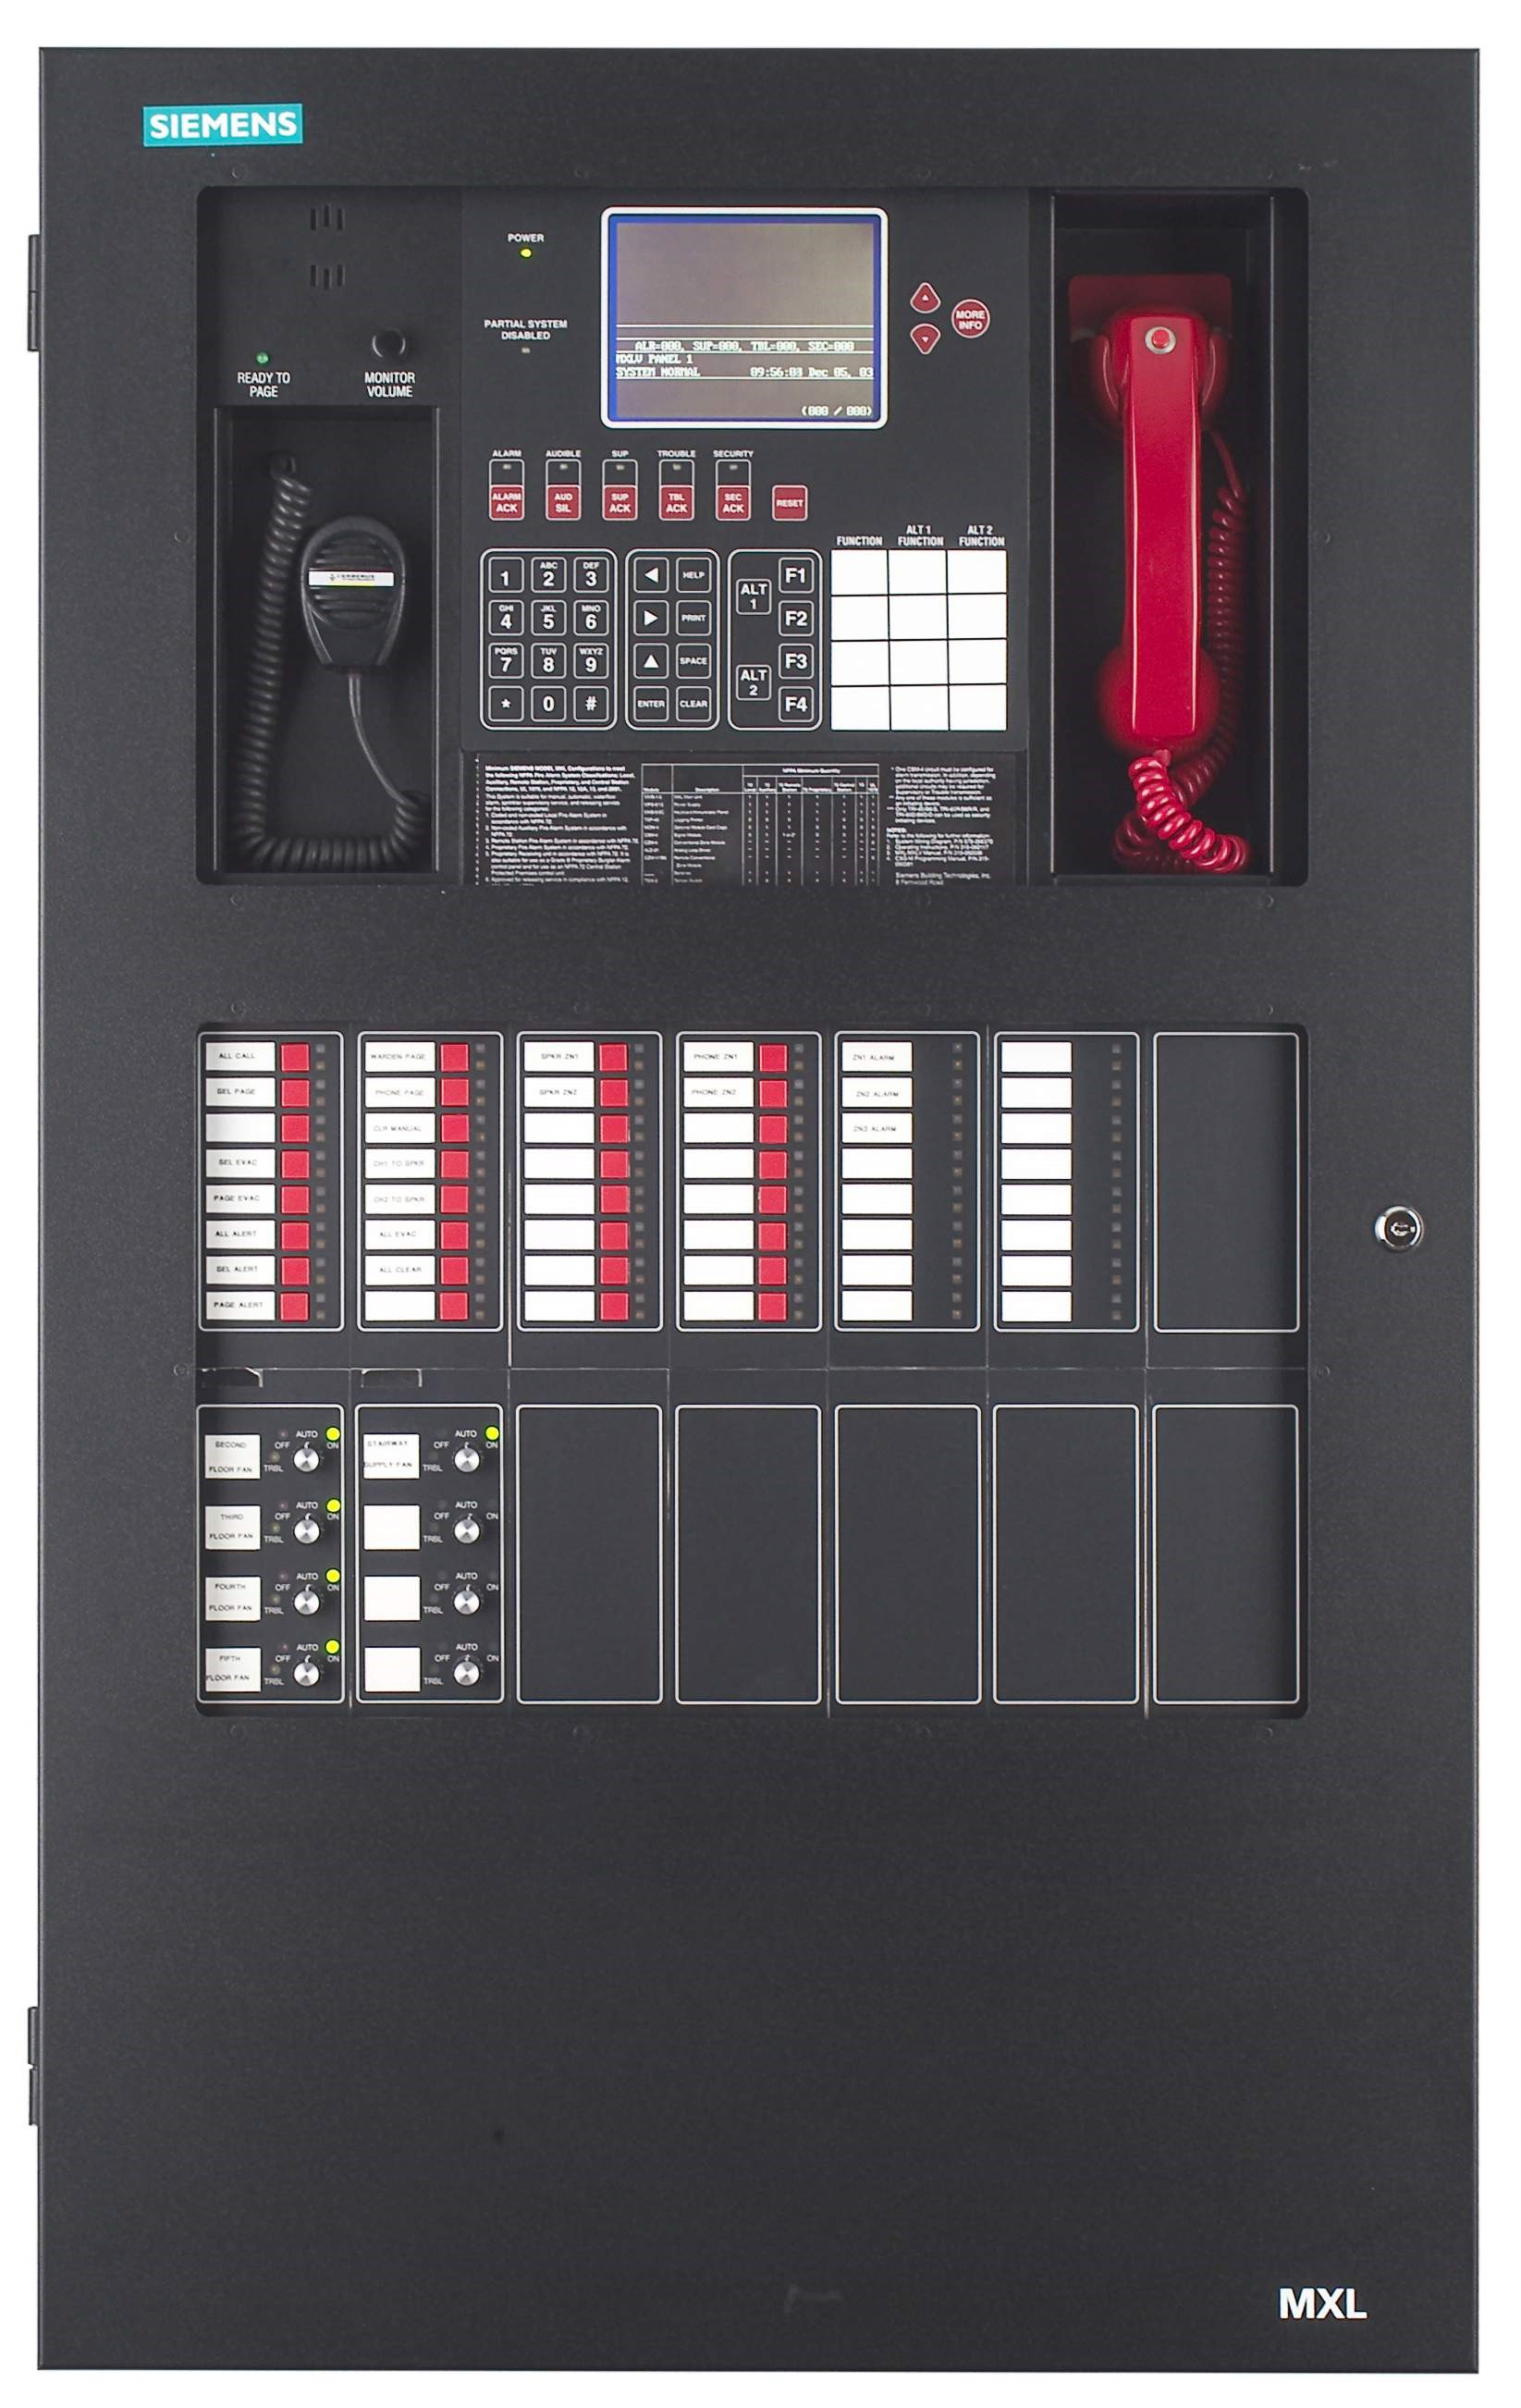 siemens fire alarm panel manual best setting instruction guide u2022 rh ourk9 co siemens mxl fire alarm manual siemens smoke detector manual